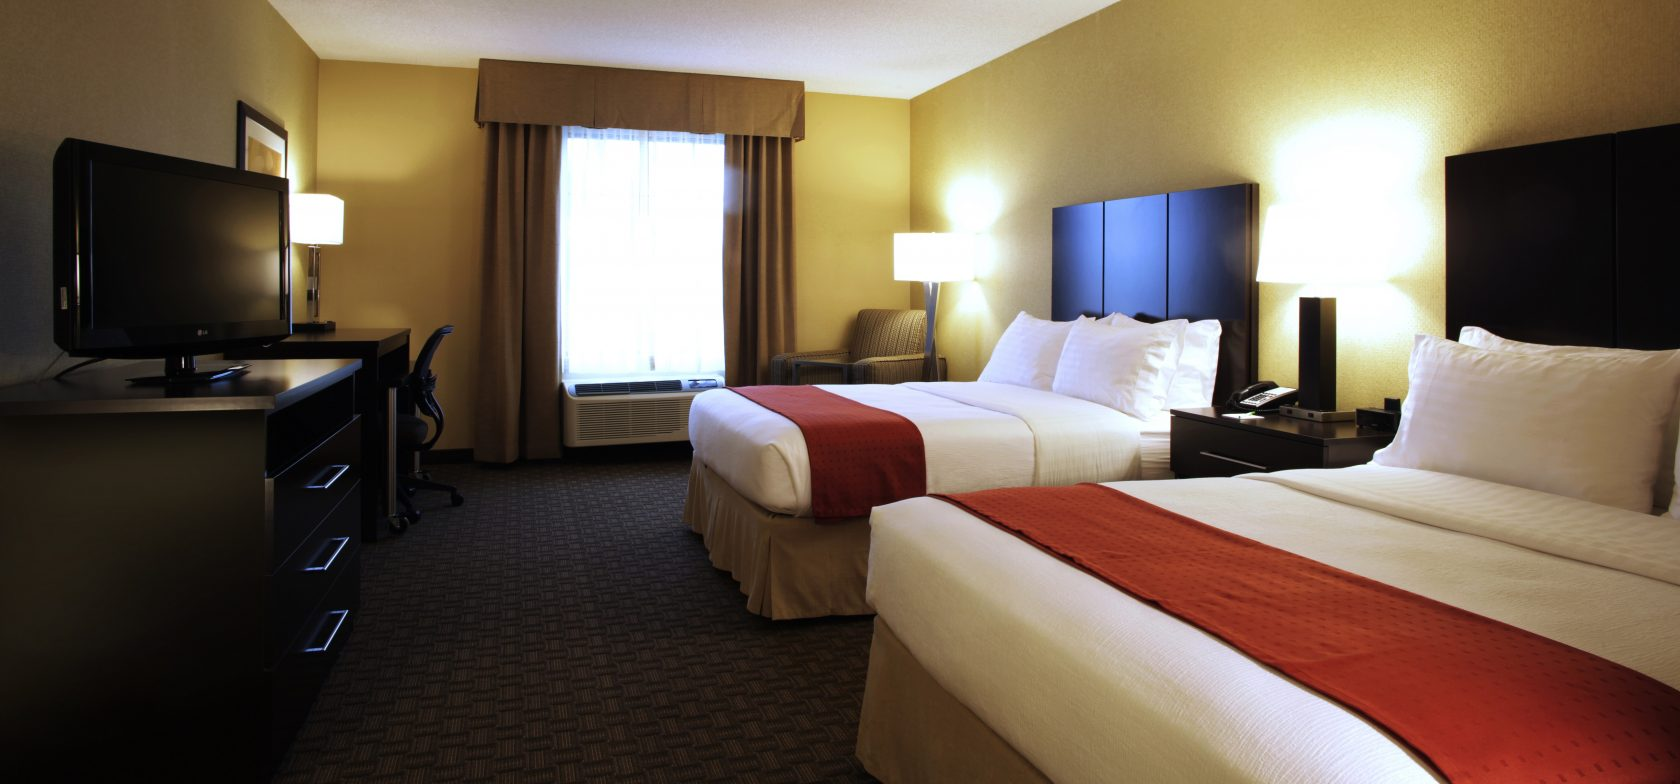 Double Queen Room at Holiday Inn Phoenix Chandler